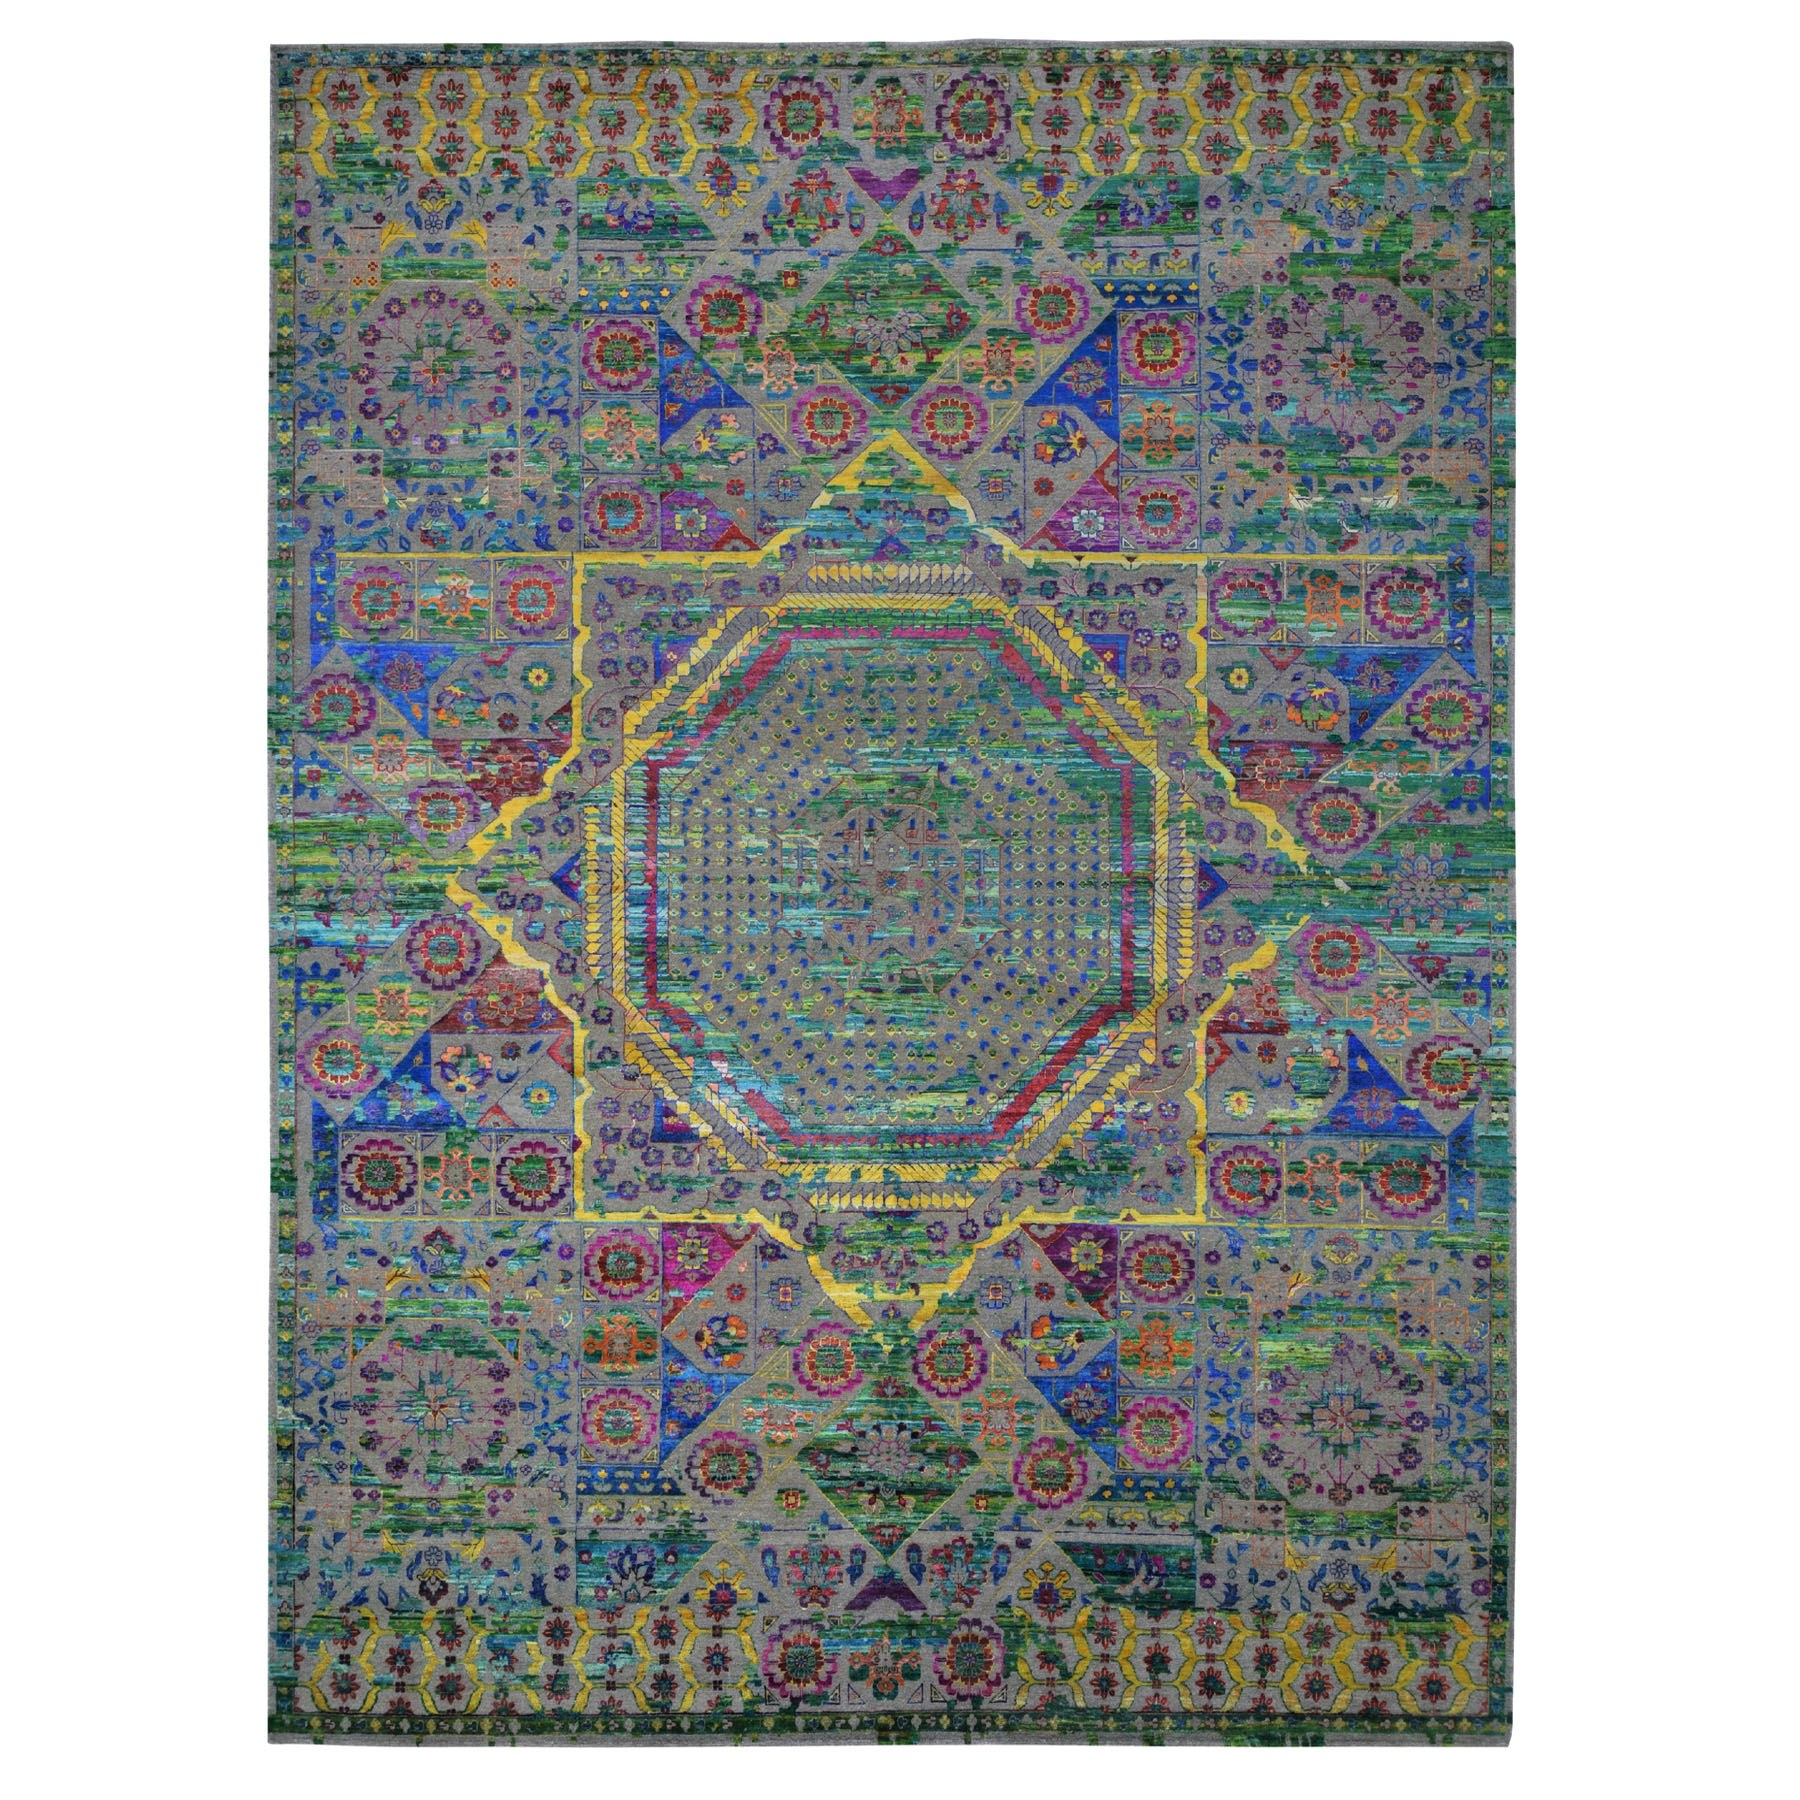 10'x14' Colorful Sari Silk Mamluk Design Hand Knotted Oriental Rug